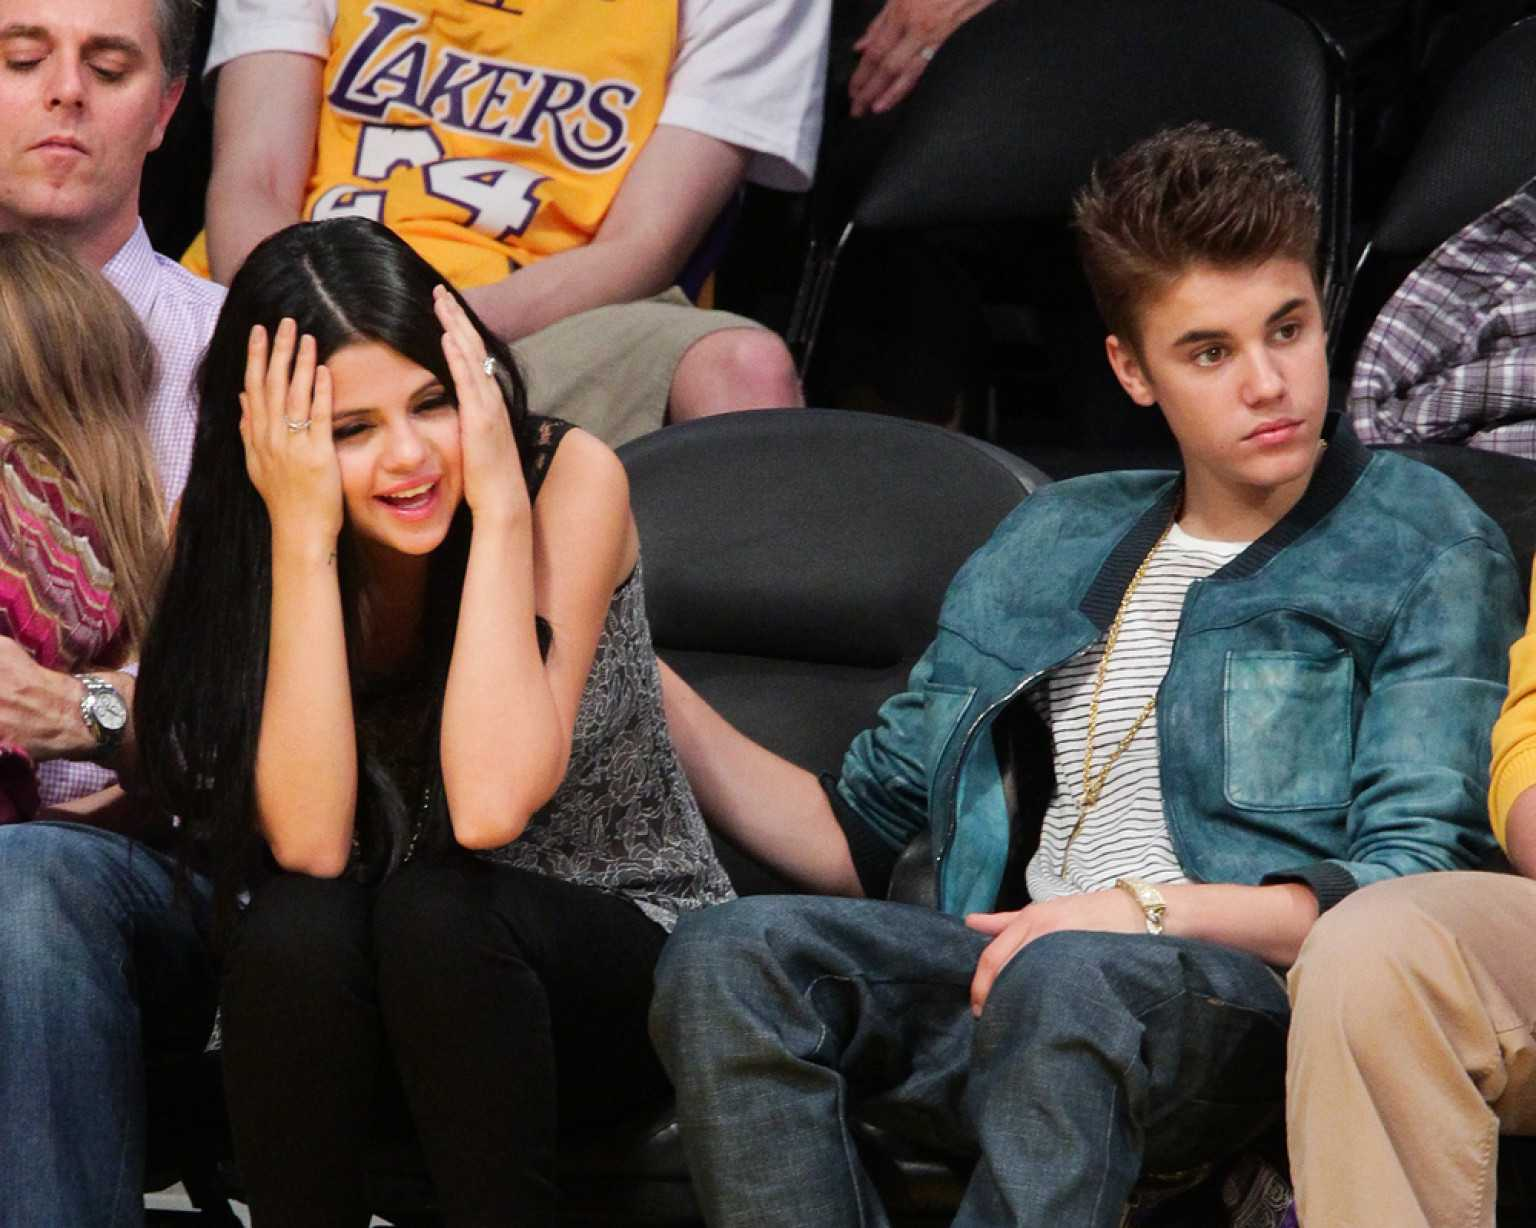 Justin Bieber Finds New Love: Talks Openly about Relationship with Selena Gomez